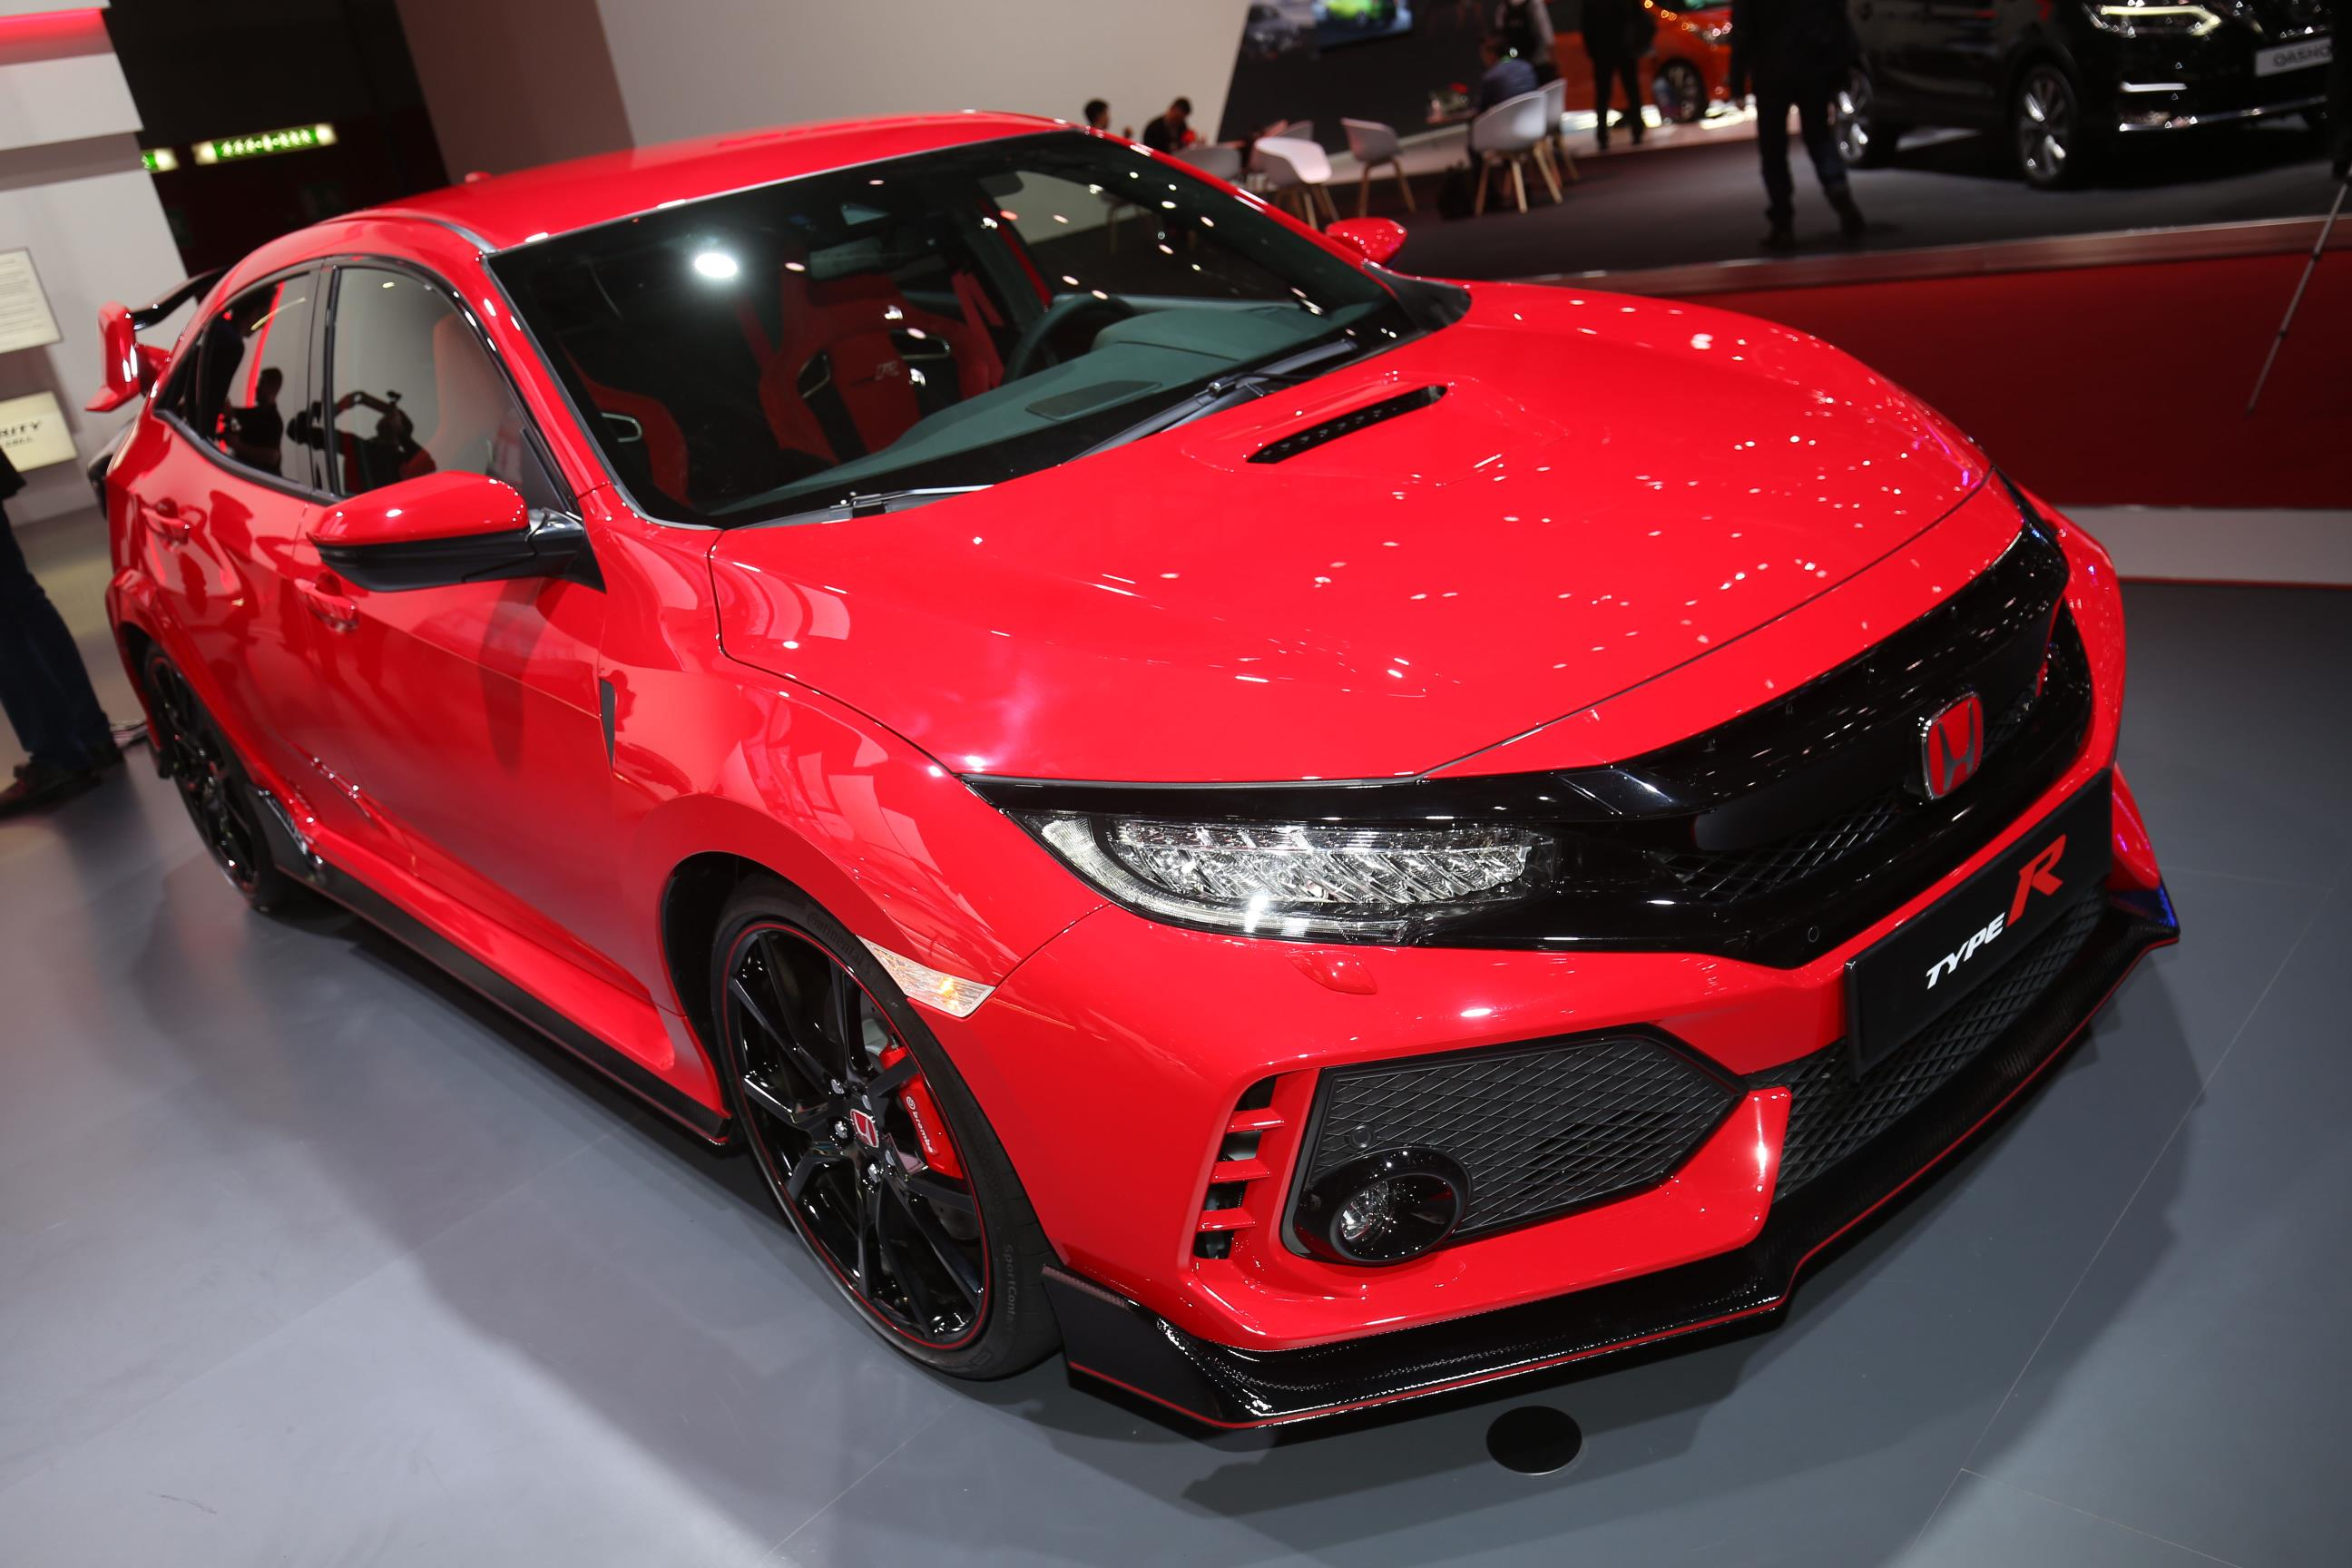 Honda To Debut U S Spec Fk8 Civic Type R At 2017 New York